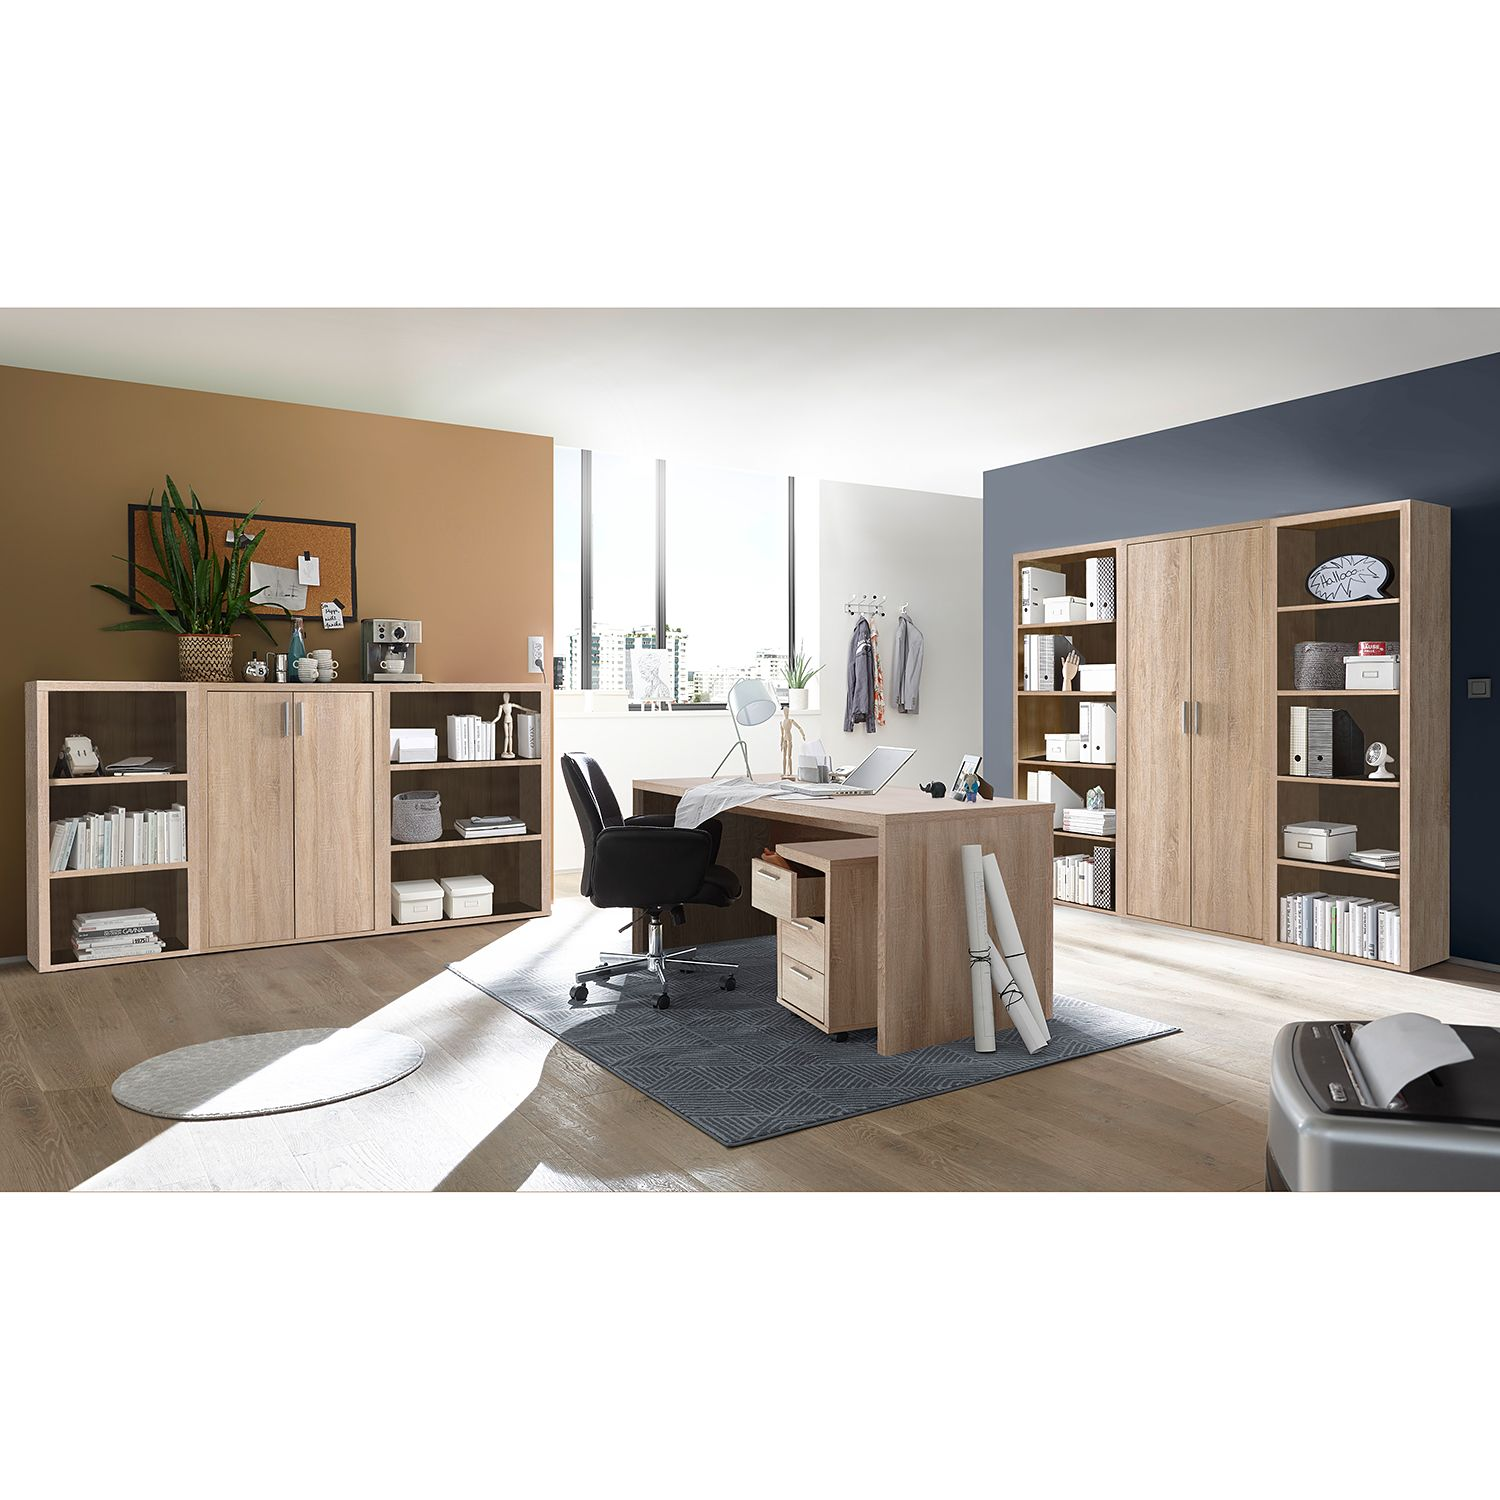 Dossierkast Wallu II, Furnitive